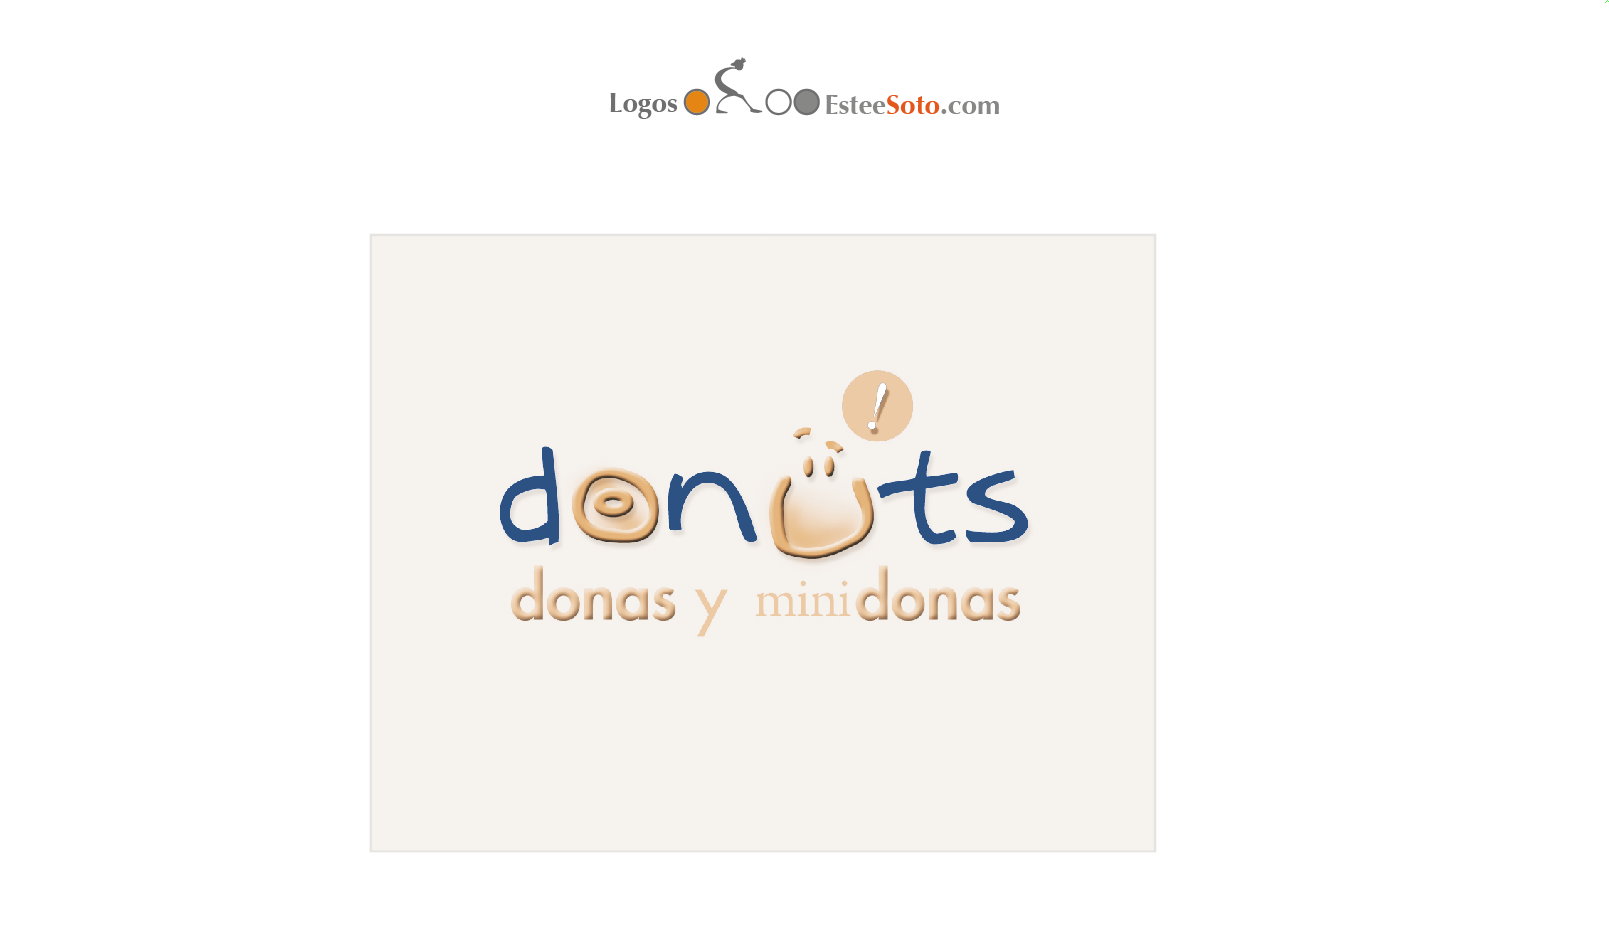 Donuts and Mini Donuts